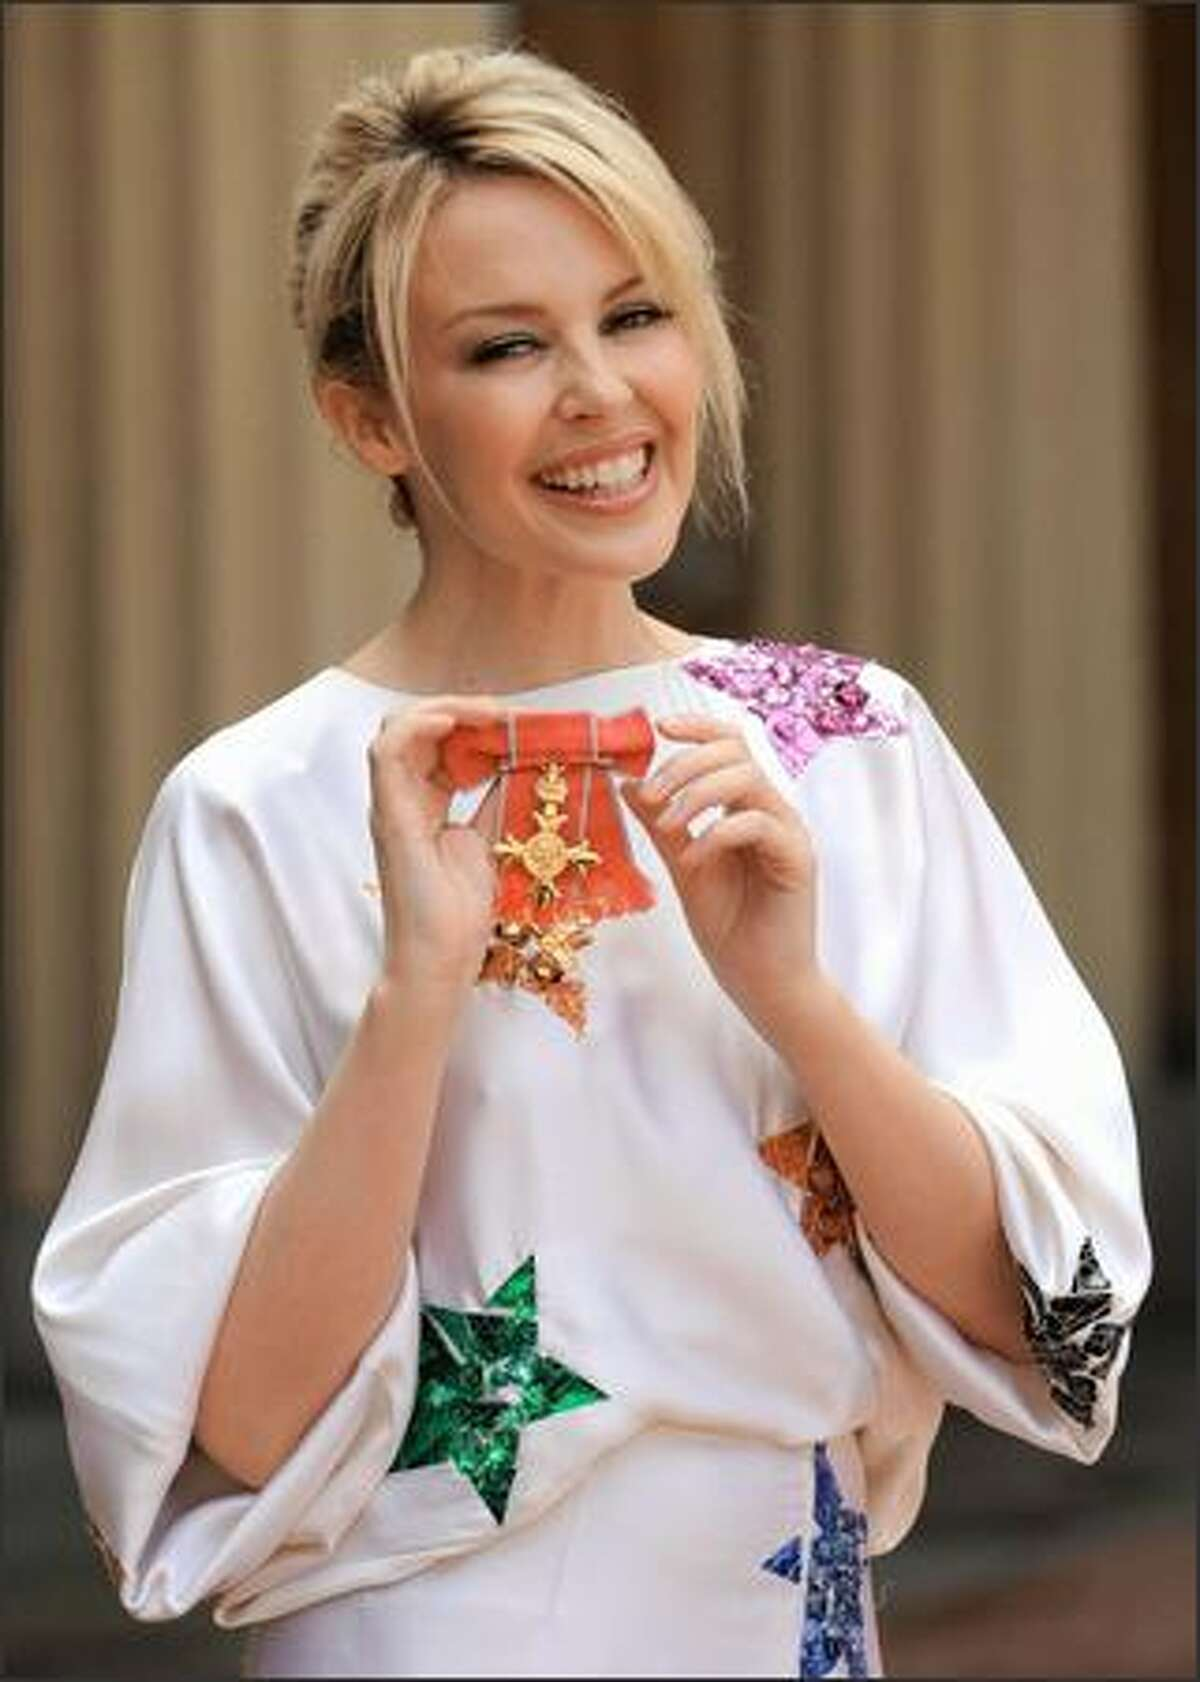 Australian pop singer Kylie Minogue poses for photographs after receiving her Order of the British Empire from the Prince of Wales for services to music at Buckingham Palace in London.